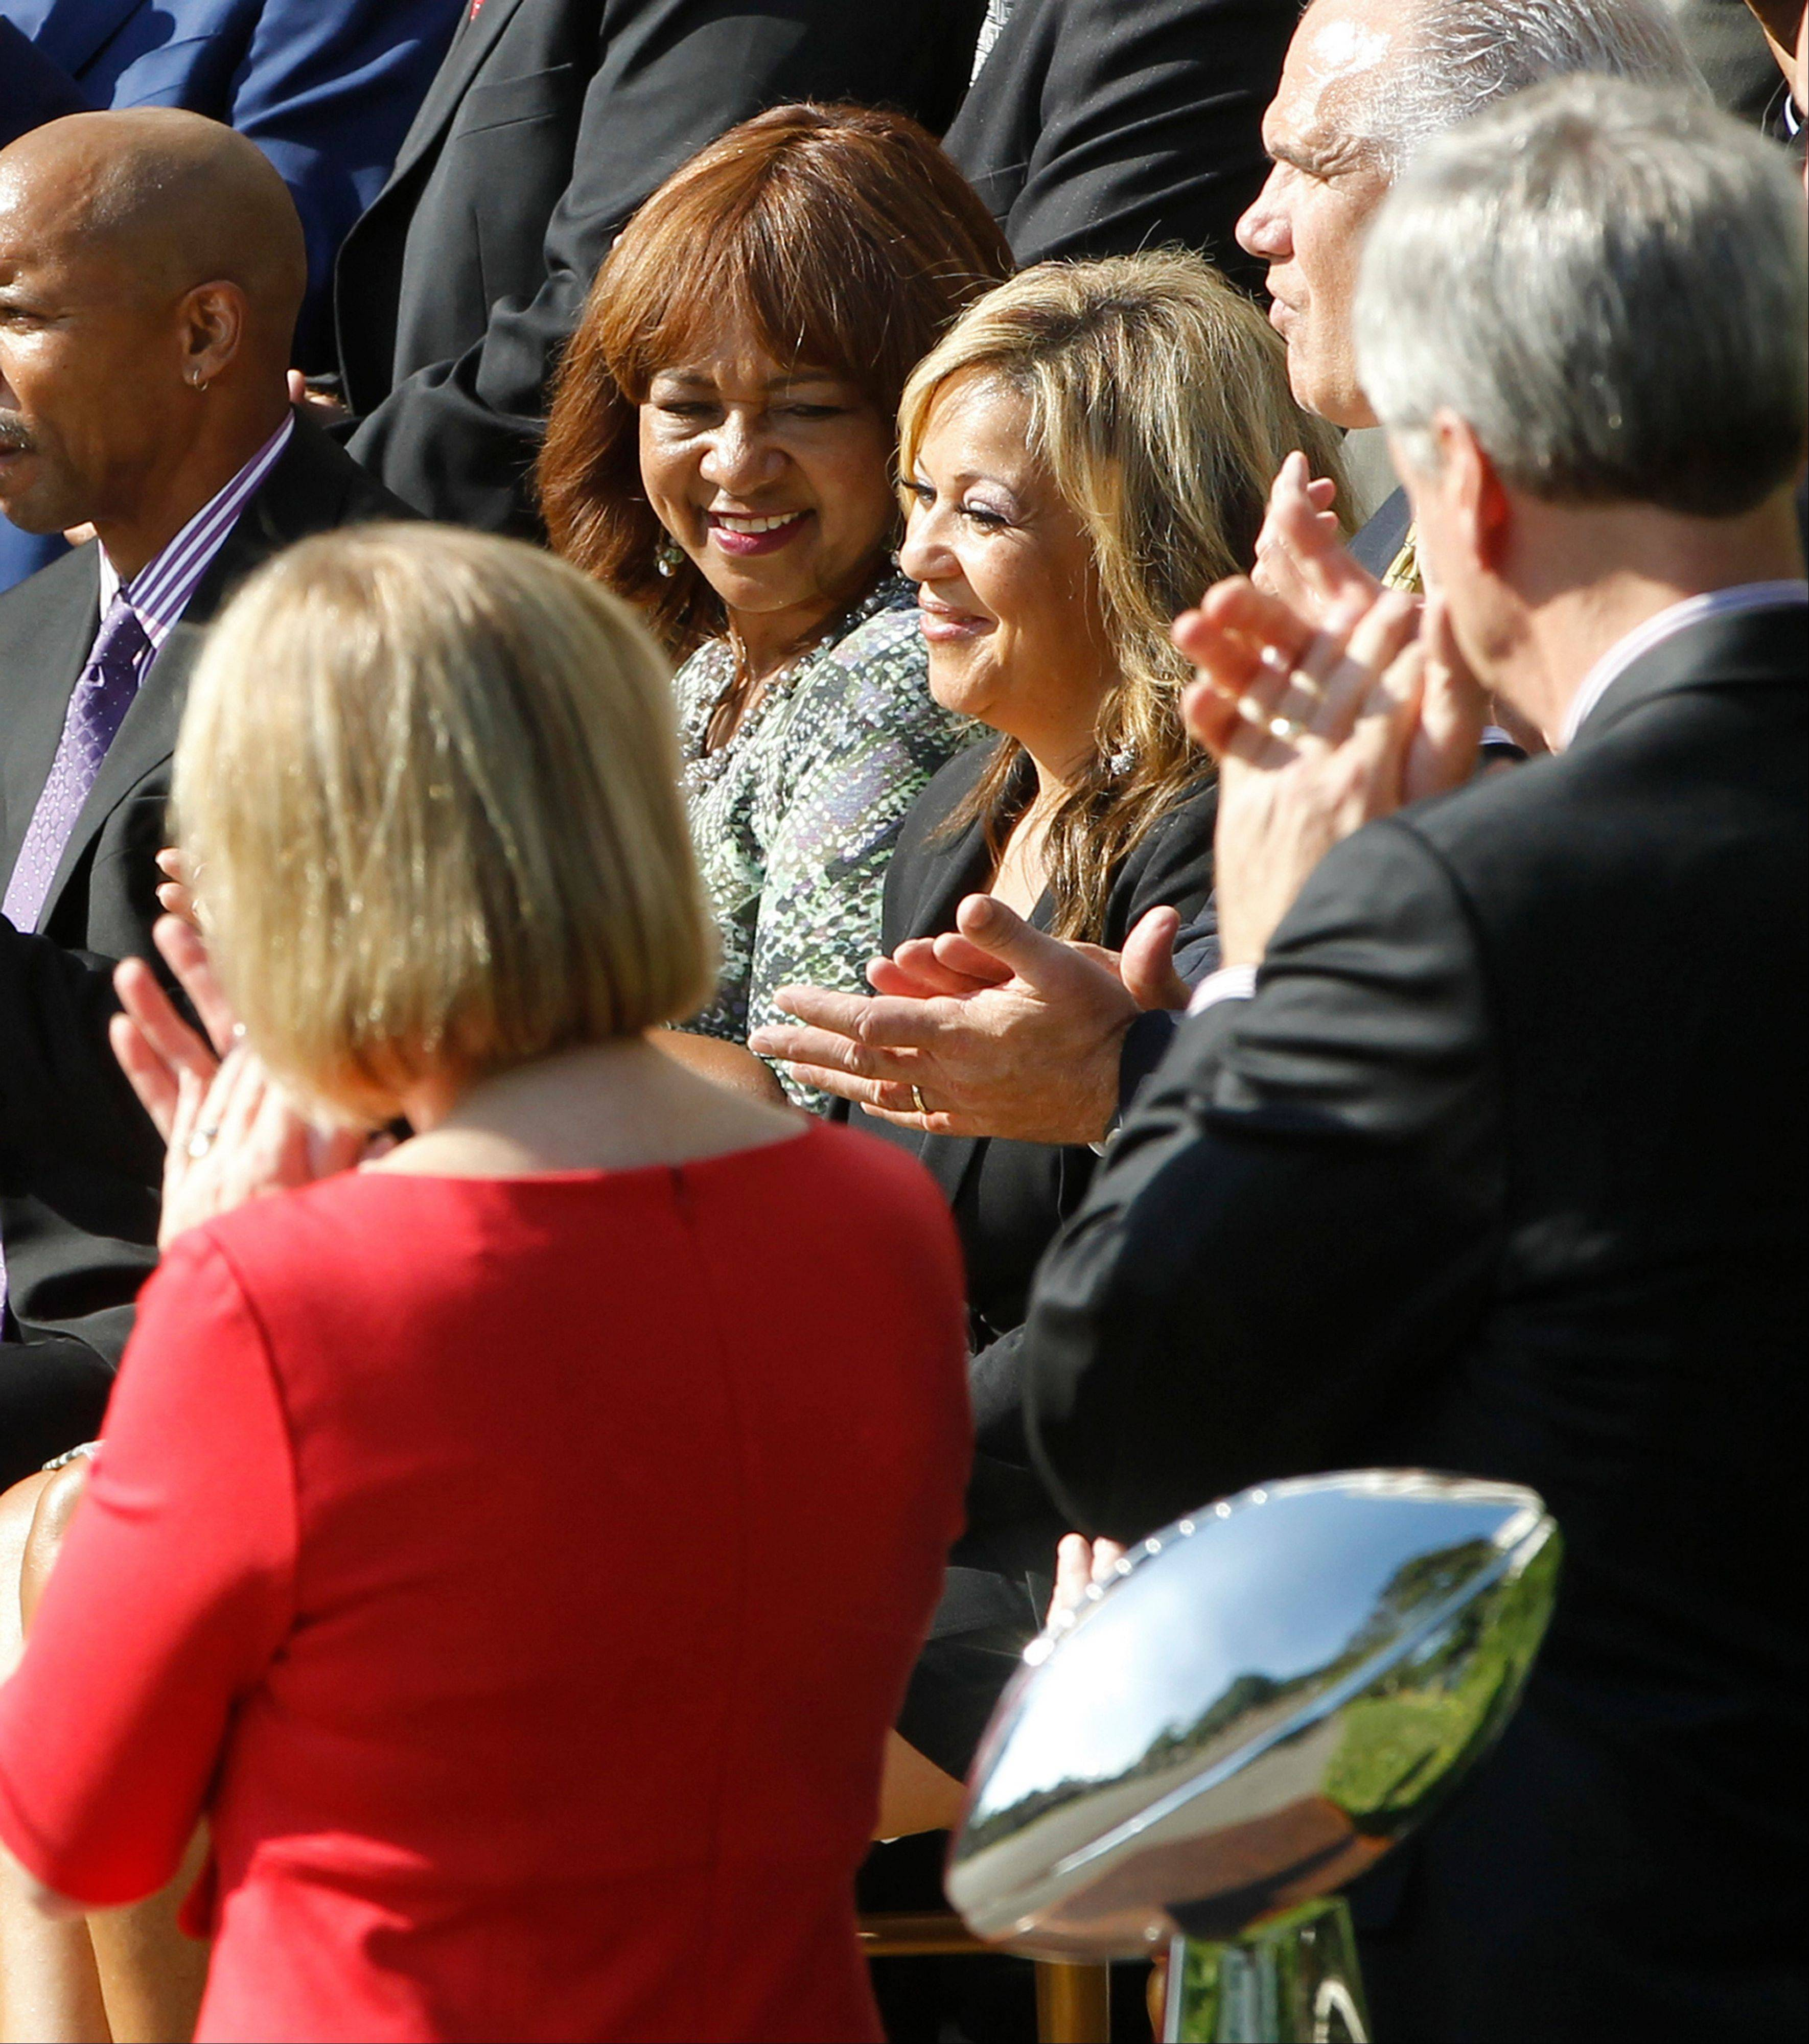 Connie Payton, wife of Walter Peyton, and Alicia Duerson, wife of Dave Duerson, are pictured as President Barack Obama honors the 1985 Super Bowl XX Champions Chicago Bears football team during a ceremony on the South Lawn of the White House in Washington, Friday, Oct. 7, 2011.